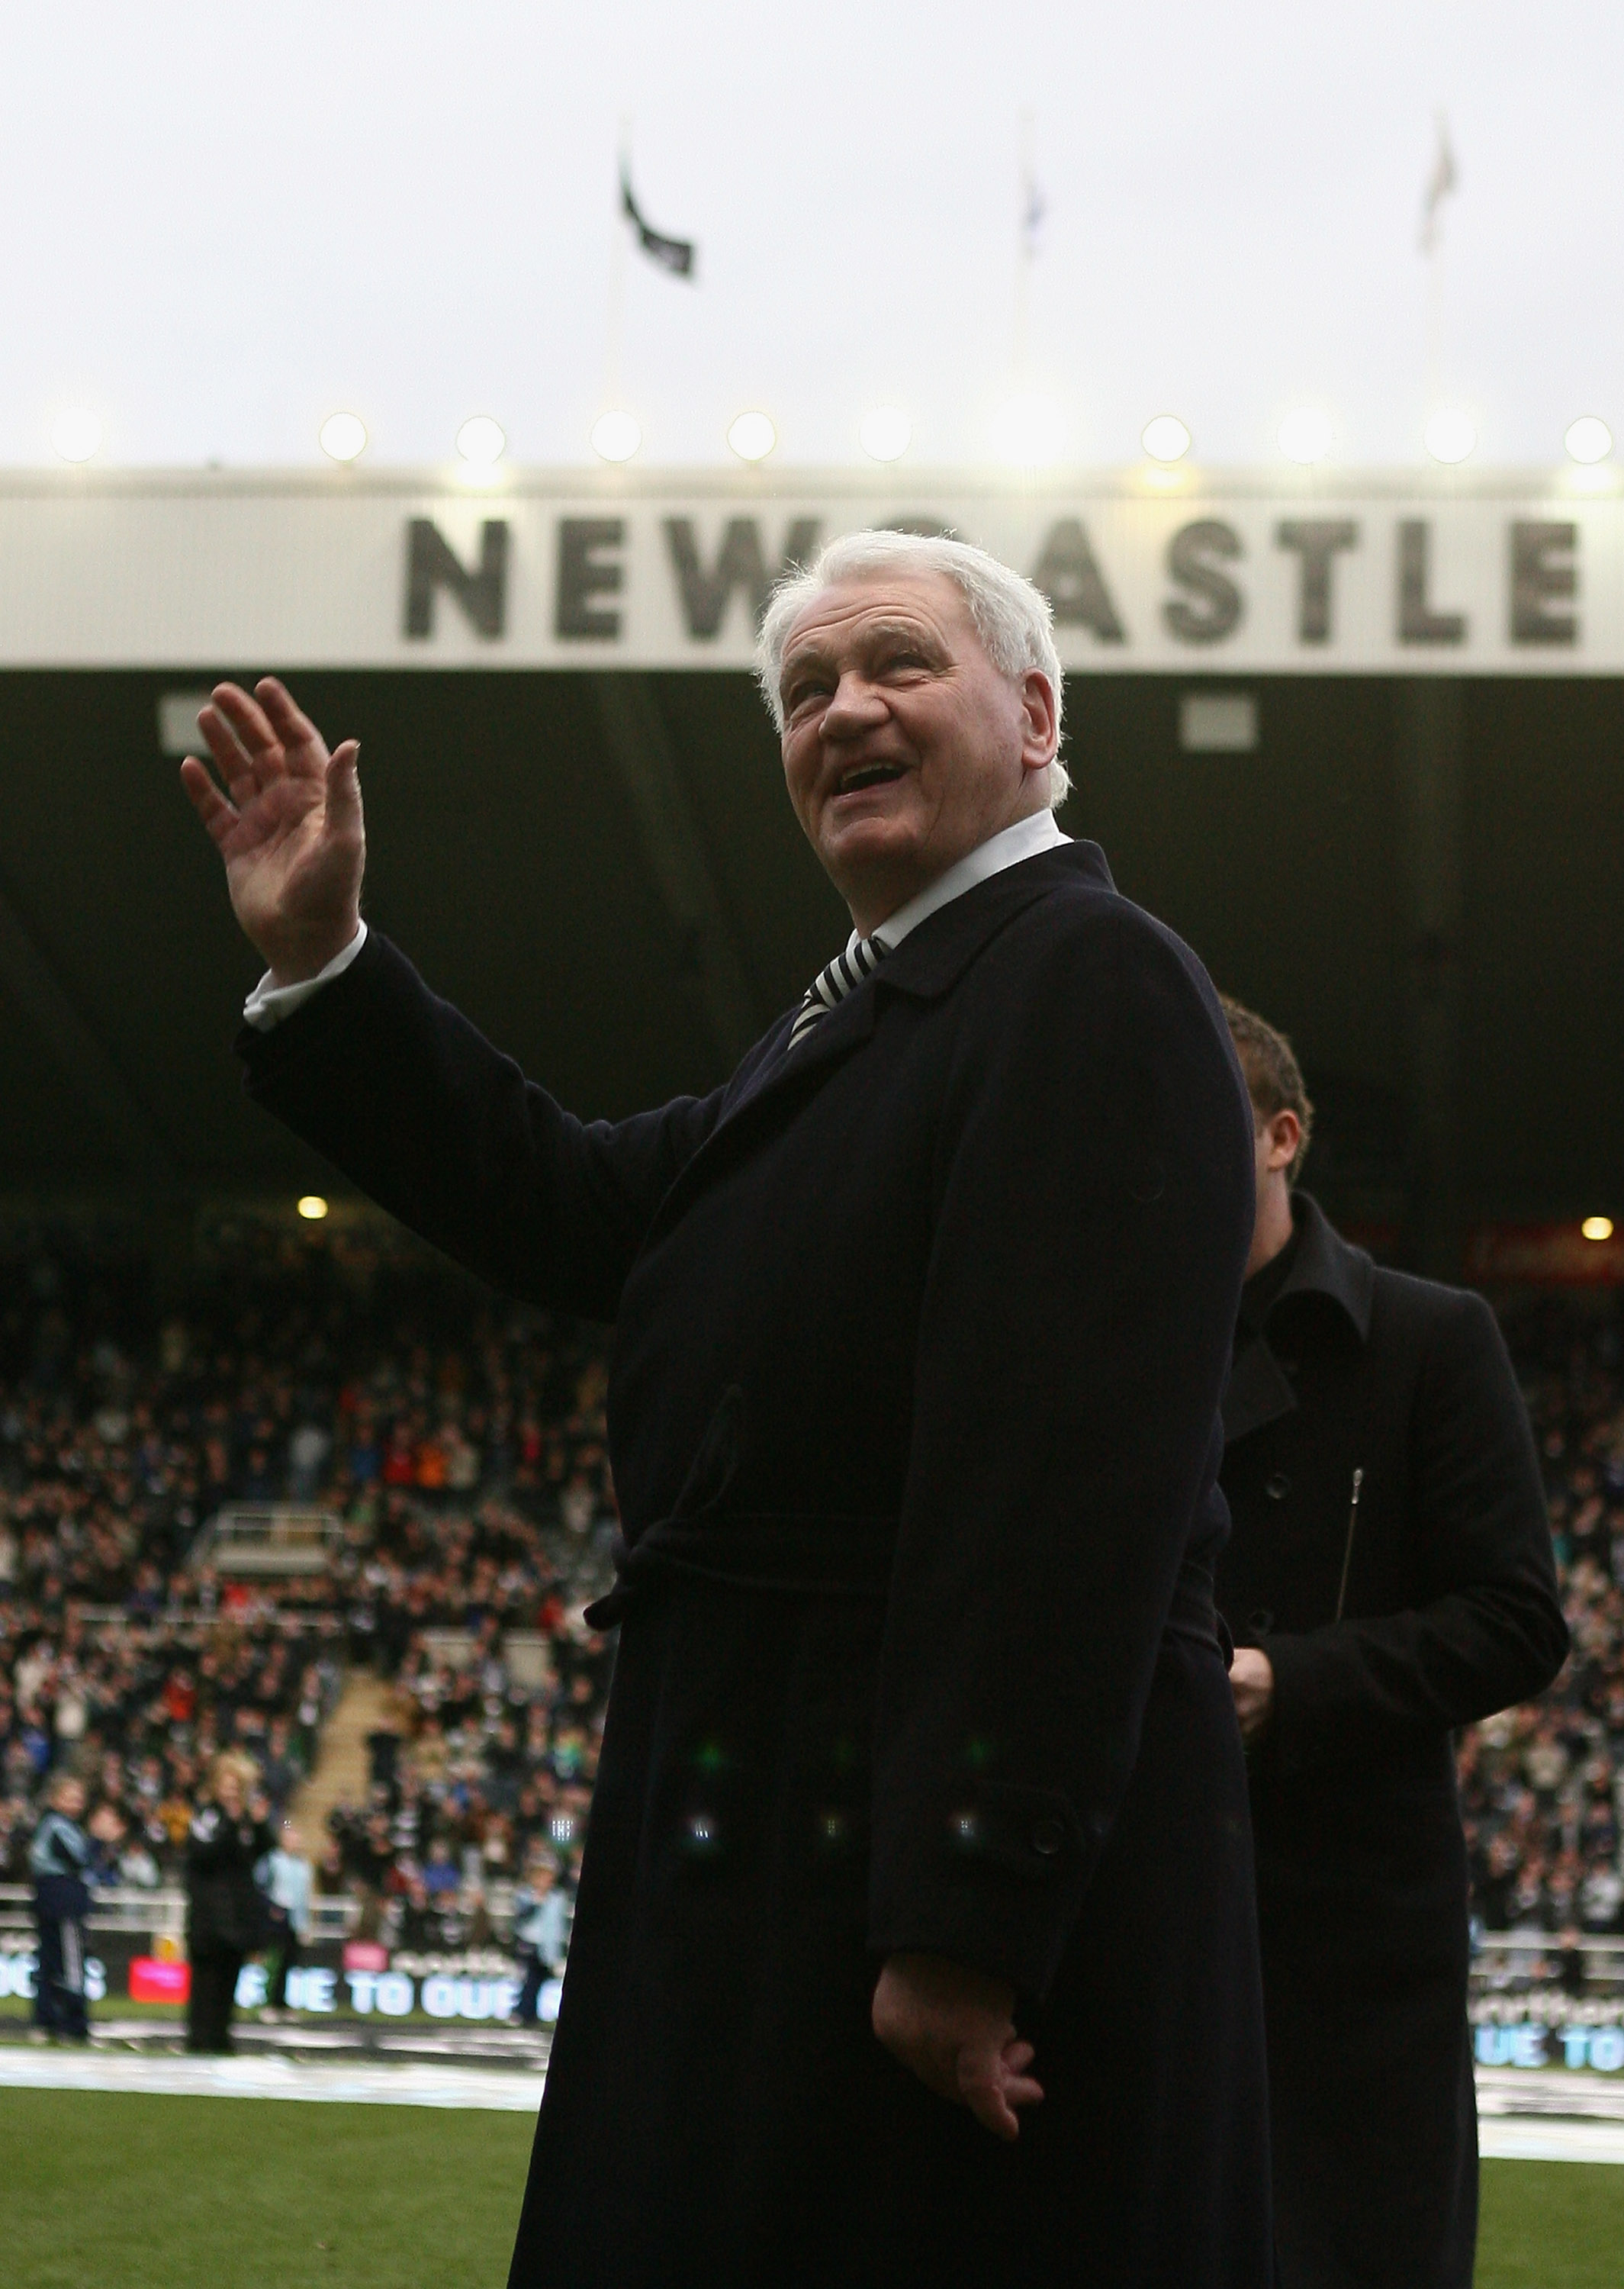 NEWCASTLE, UNITED KINGDOM - FEBRUARY 23:  Former Newcastle united Manager Bobby Robson acknowledges the crowd prior to the Barclays Premier League match between Newcastle United and Manchester United at St James' Park on February 23, 2008 in Newcastle, En